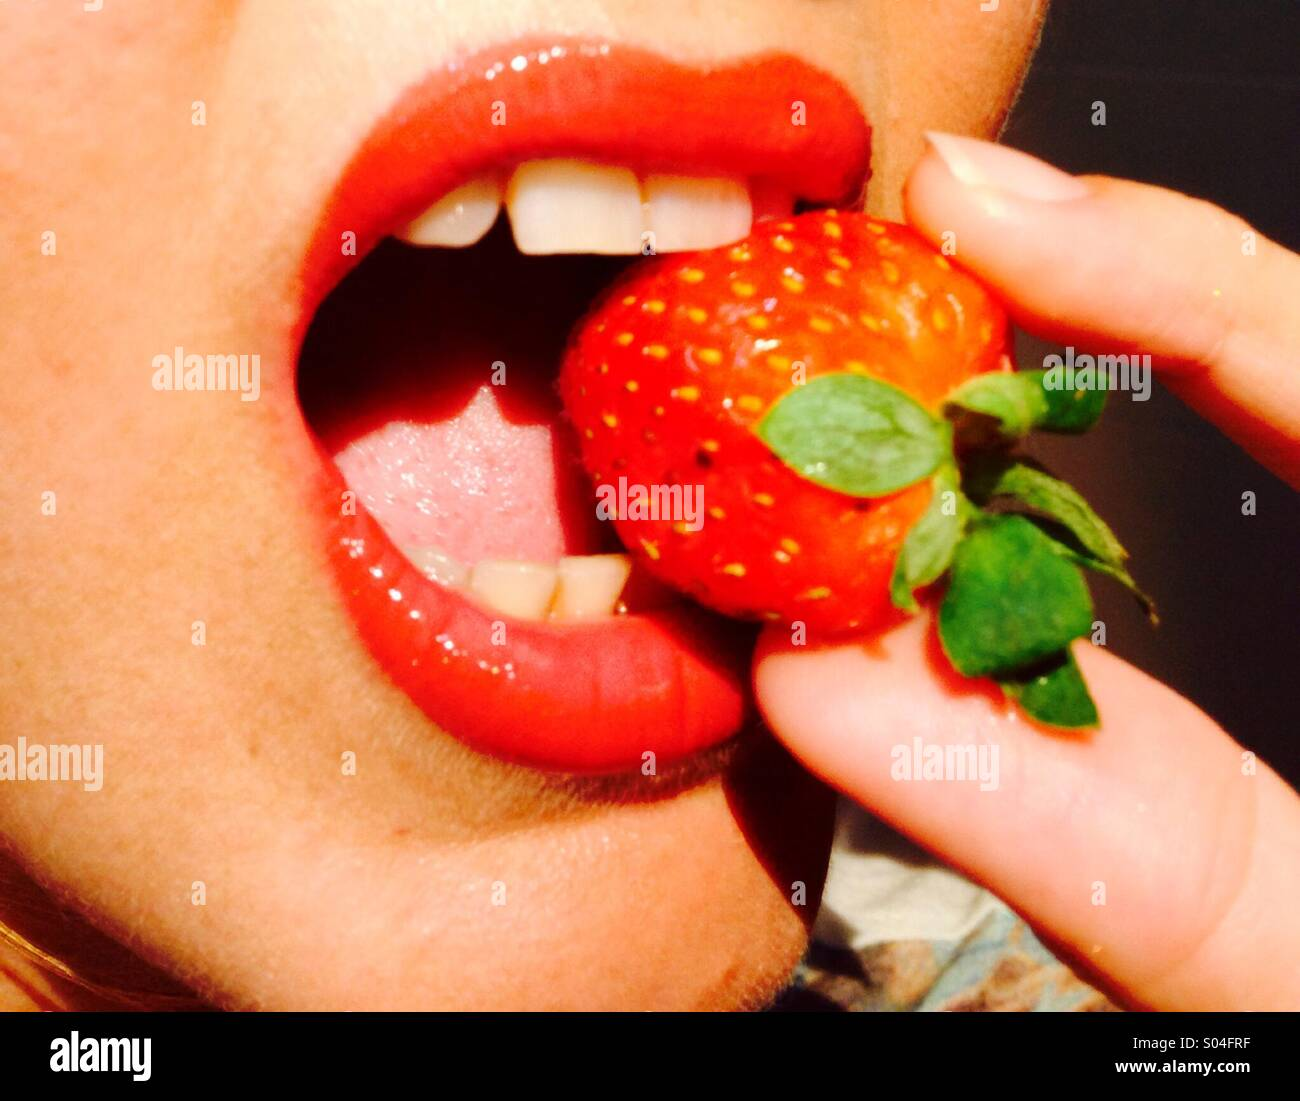 Strawberry being bitten between red lips - Stock Image